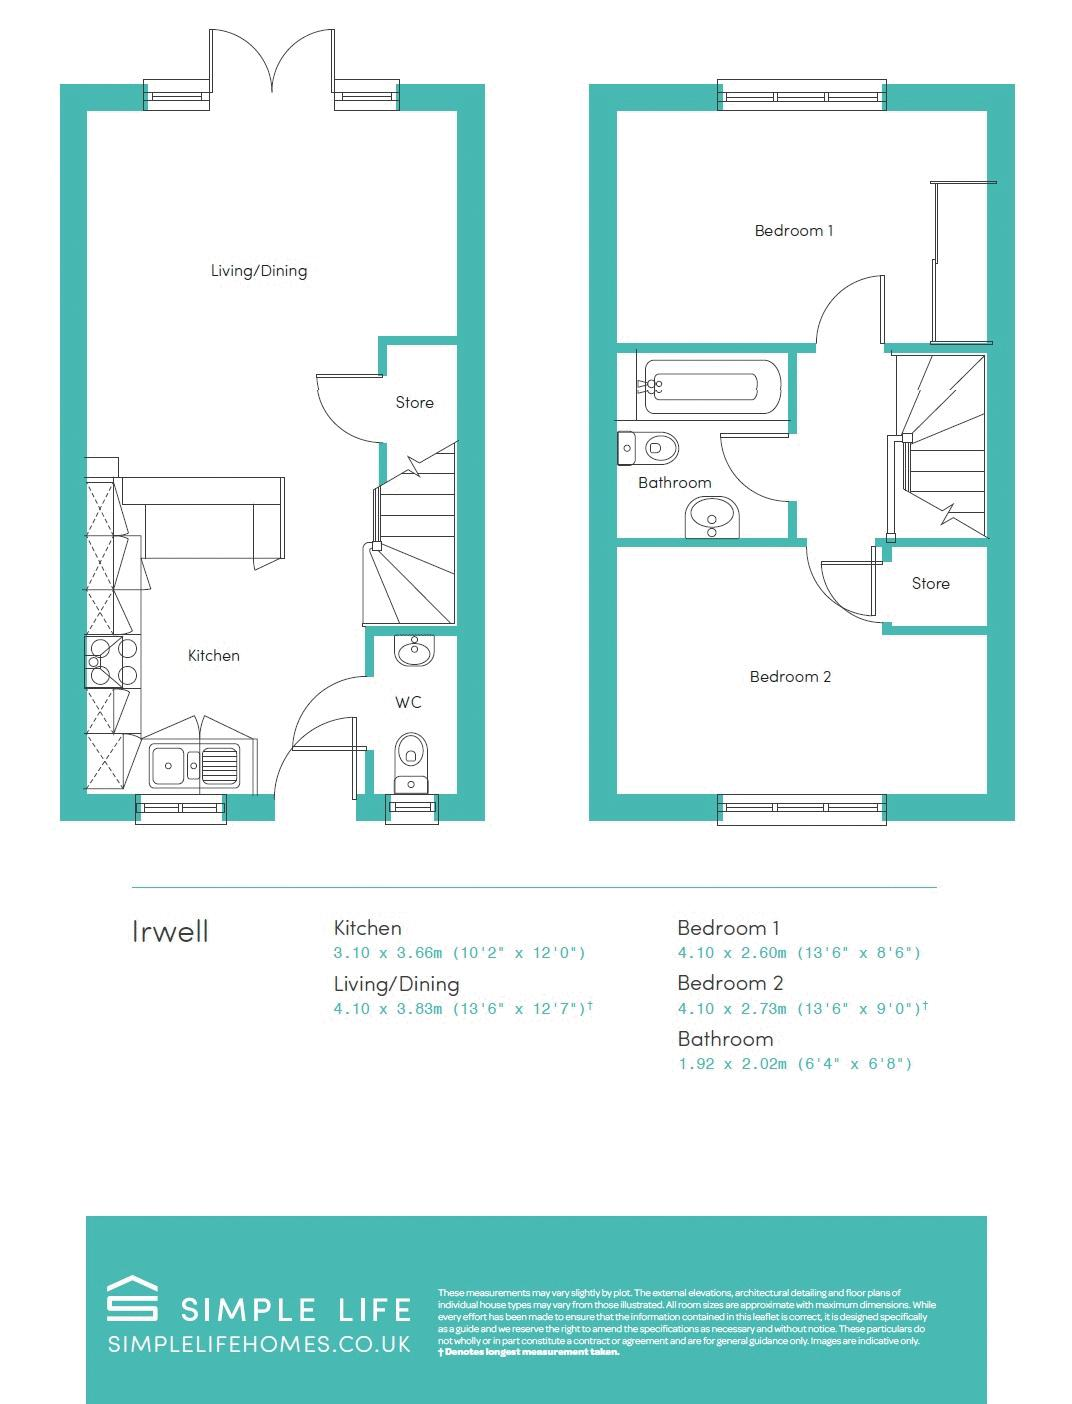 IRWELL FLOORPLAN